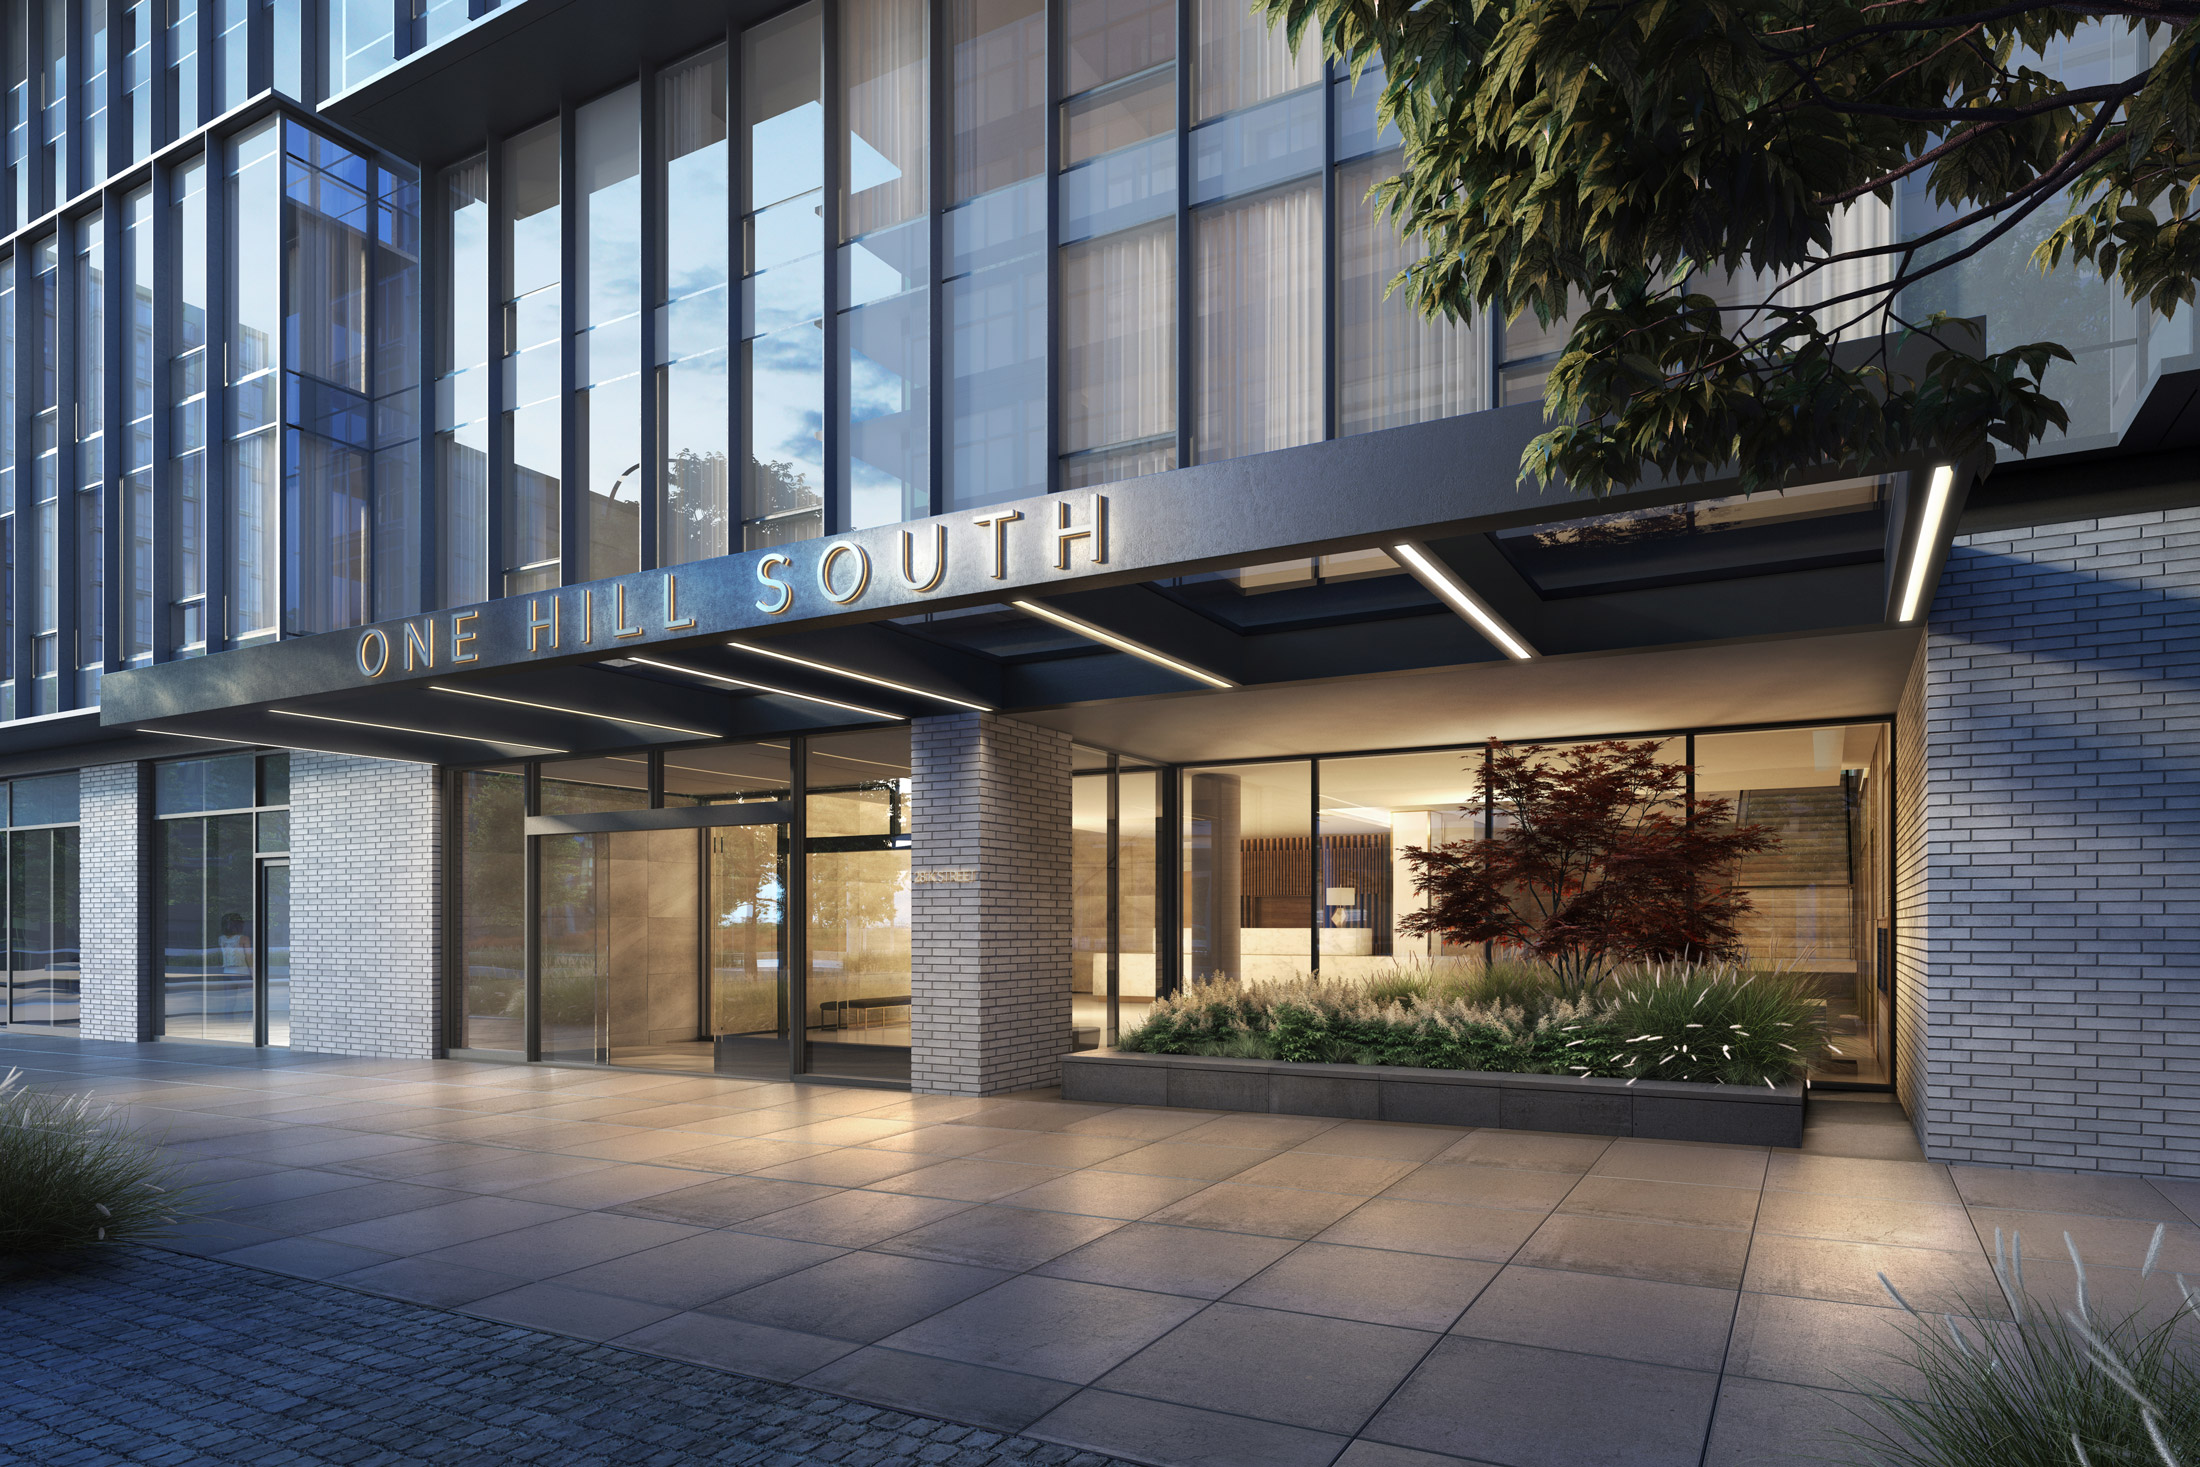 Architectural Rendering of the entrance of the One Hill South project located in Washington, DC